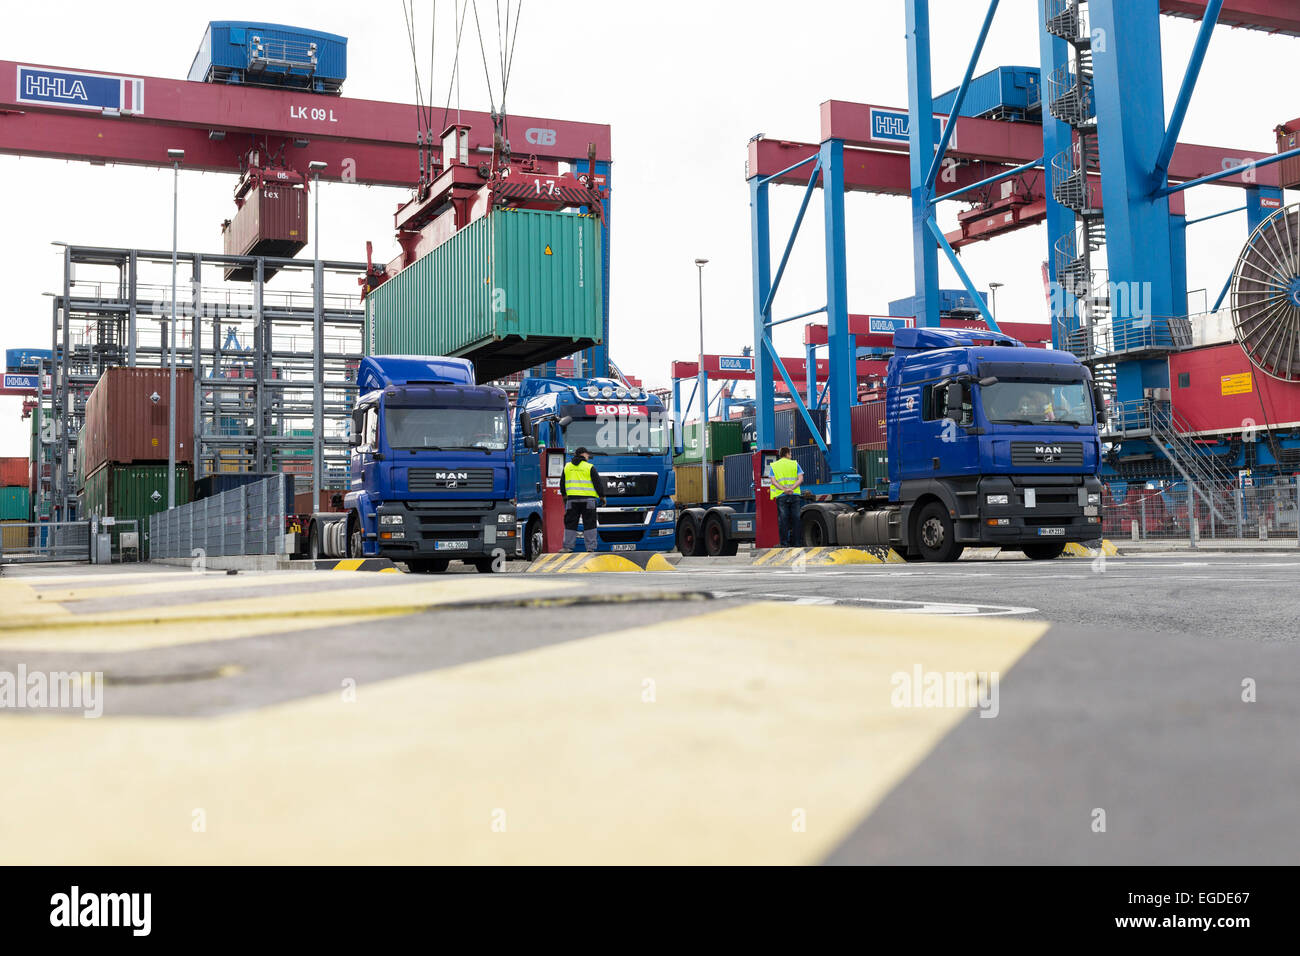 container beladen ein lkw im hamburger hafen hamburg deutschland stockfoto bild 78972495 alamy. Black Bedroom Furniture Sets. Home Design Ideas